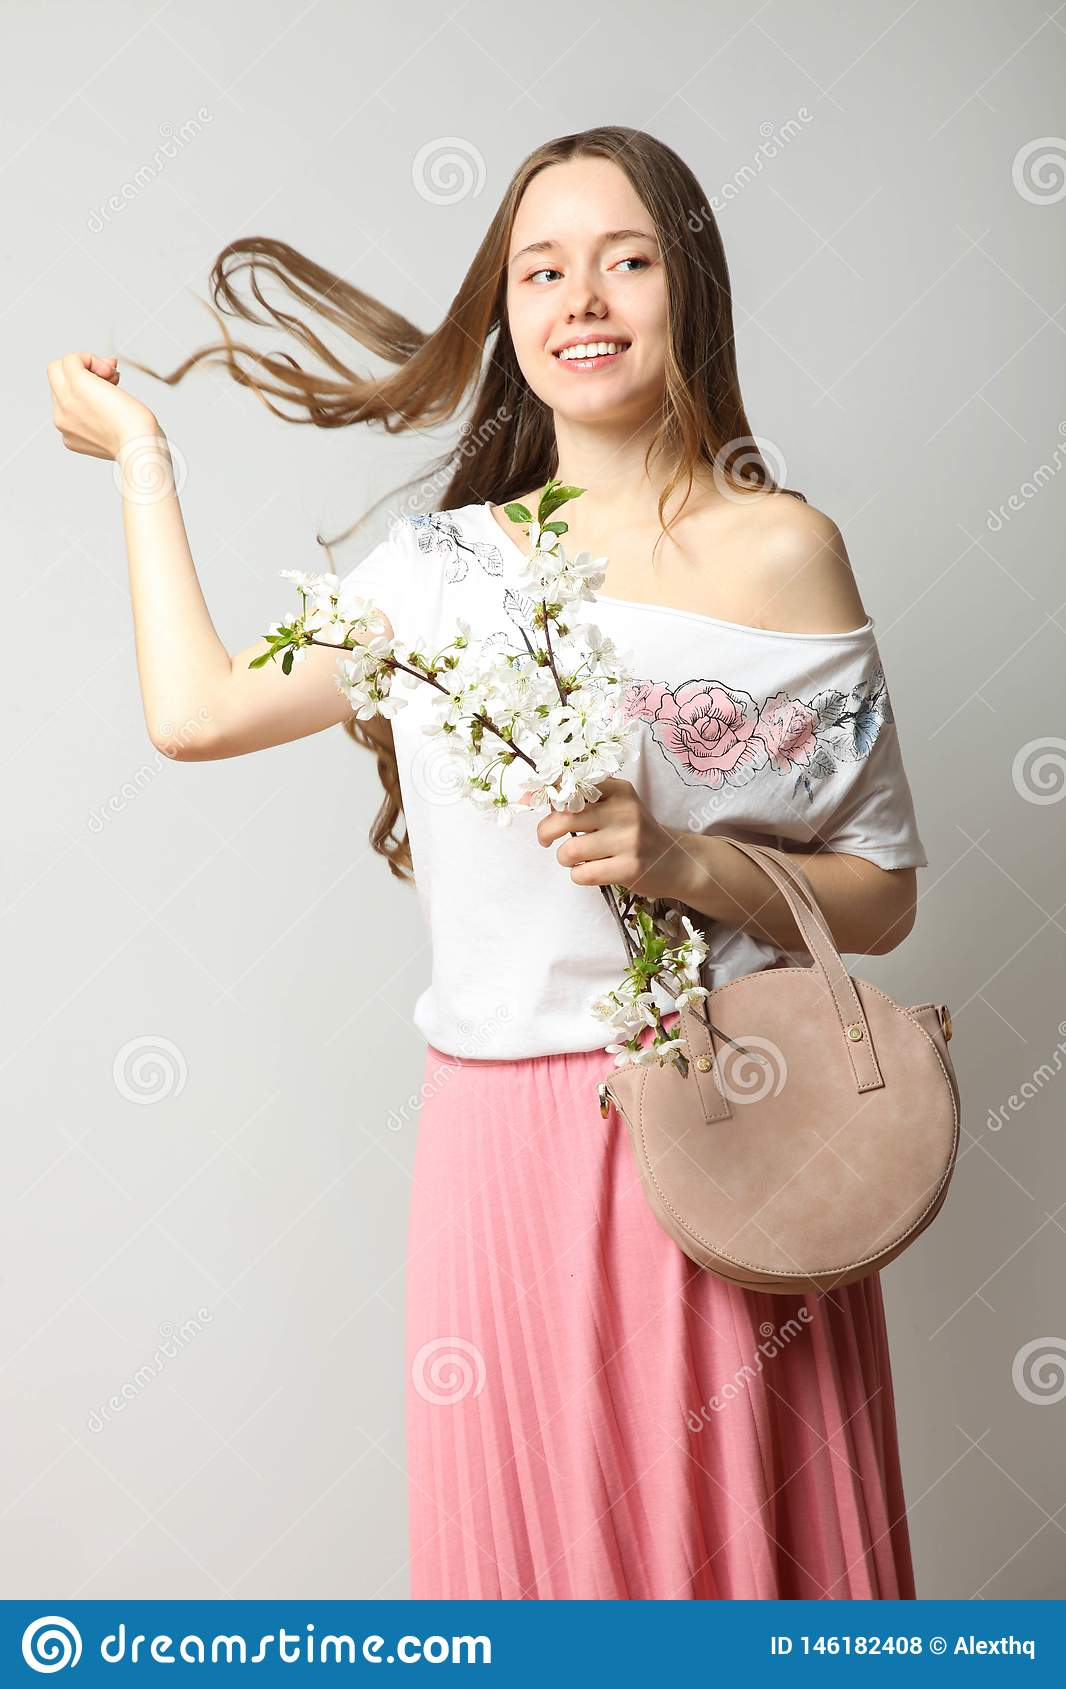 Girl in stylish spring clothes with fashionable round handbag